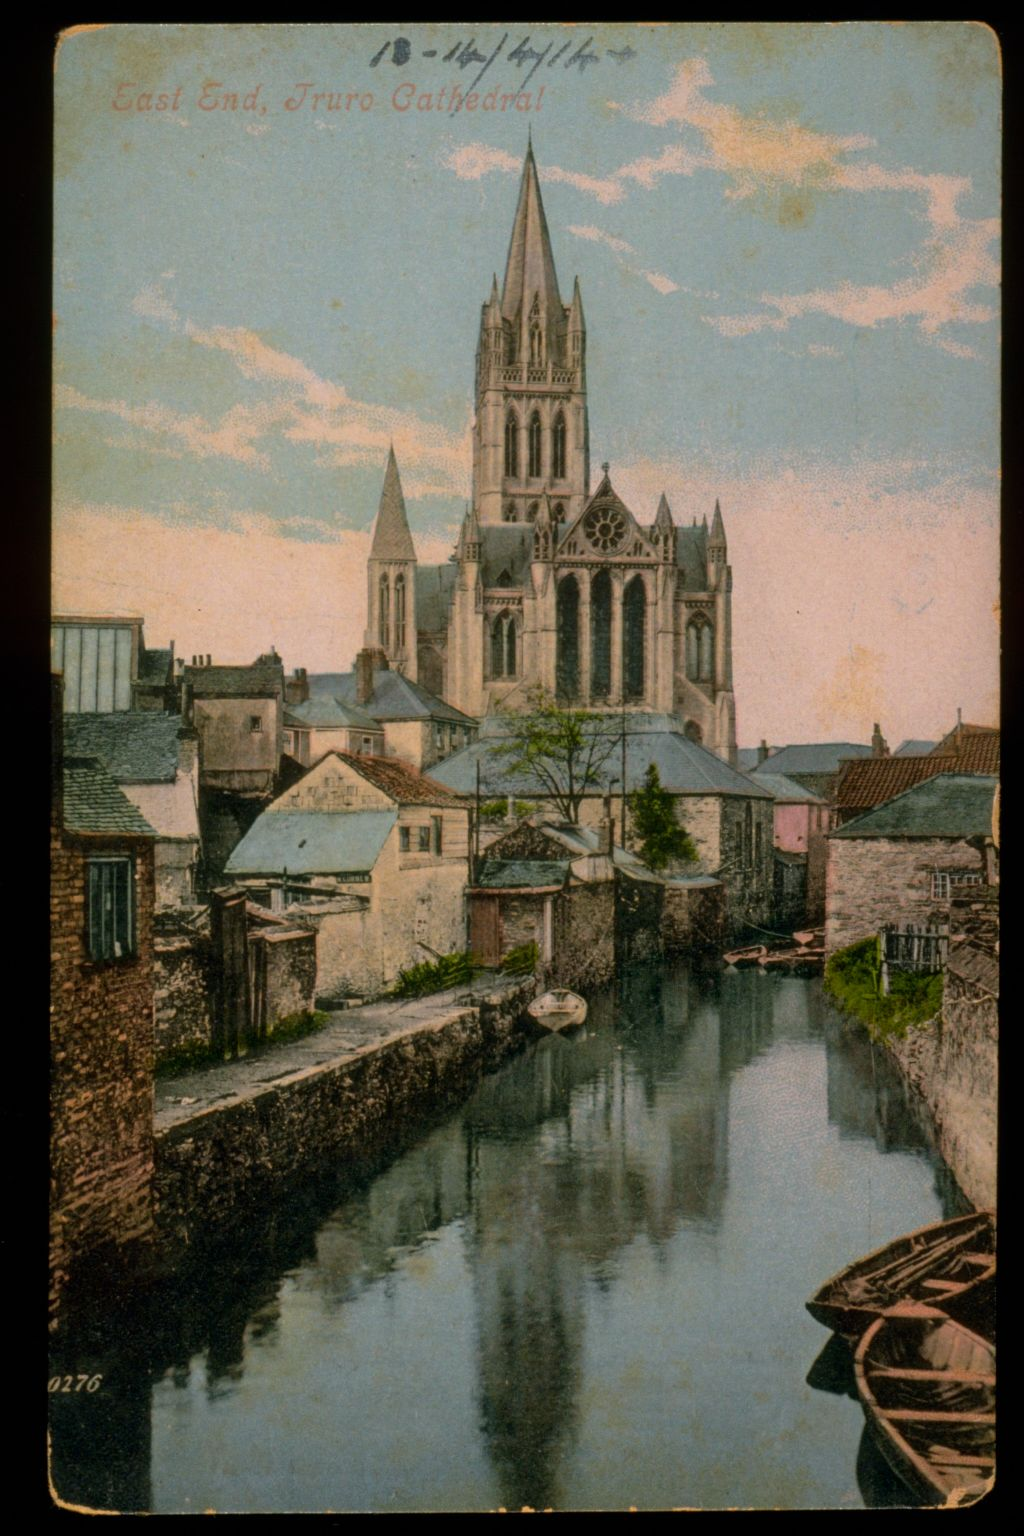 East End, Truro Cathedral.